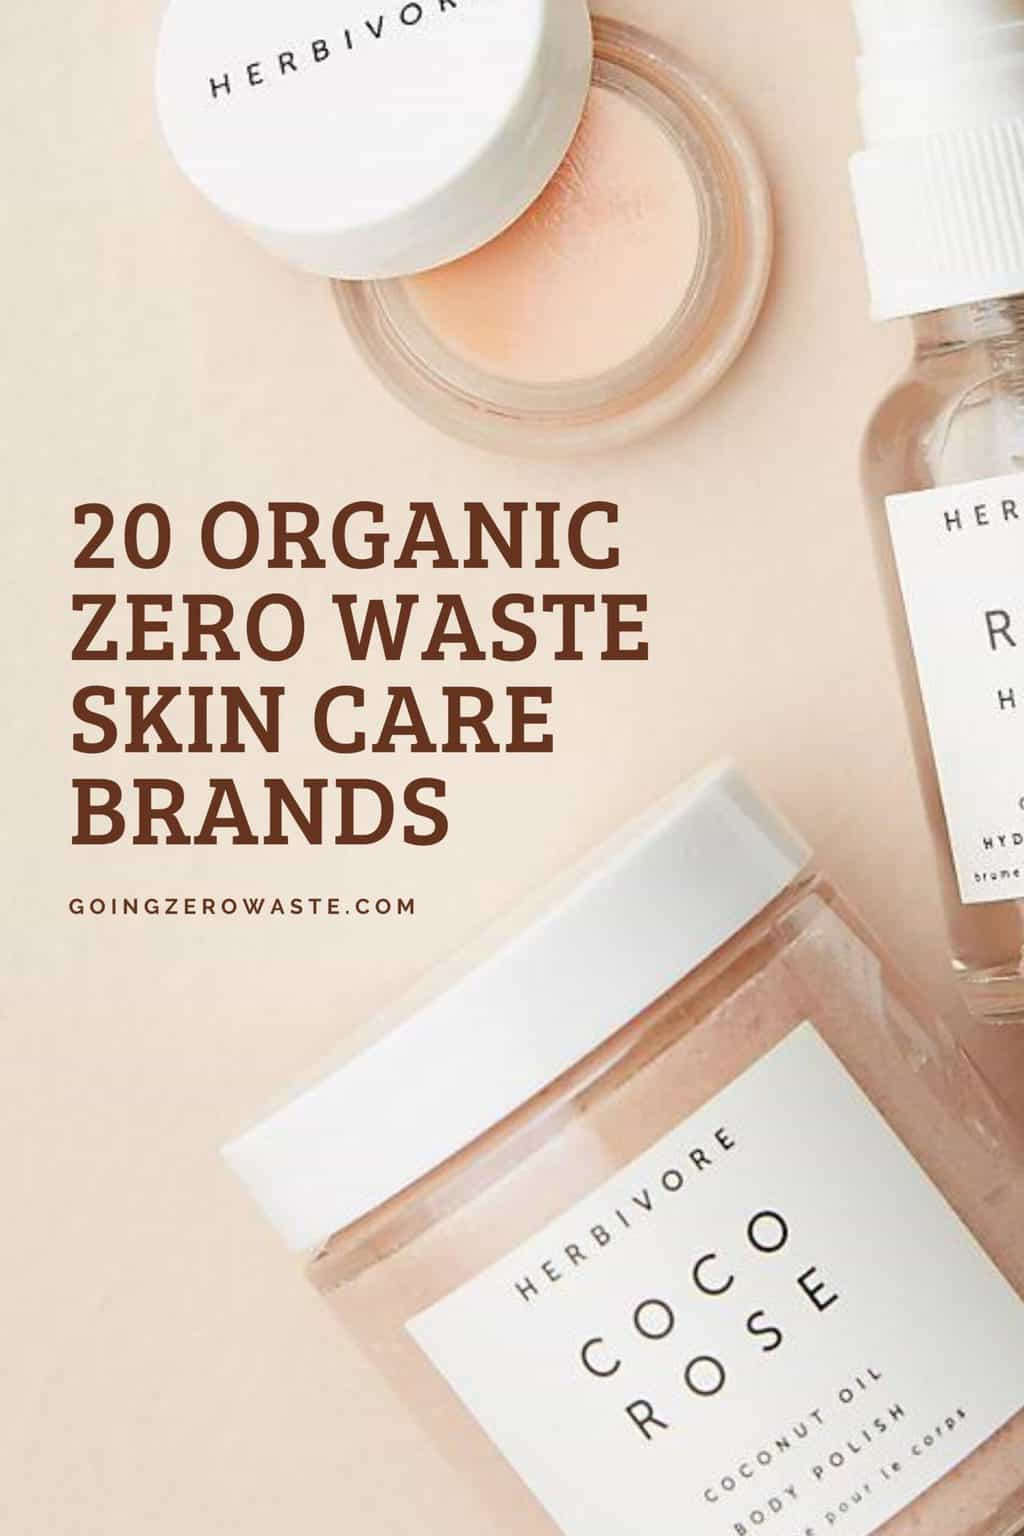 20 organic, sustainable and zero waste skin care brands